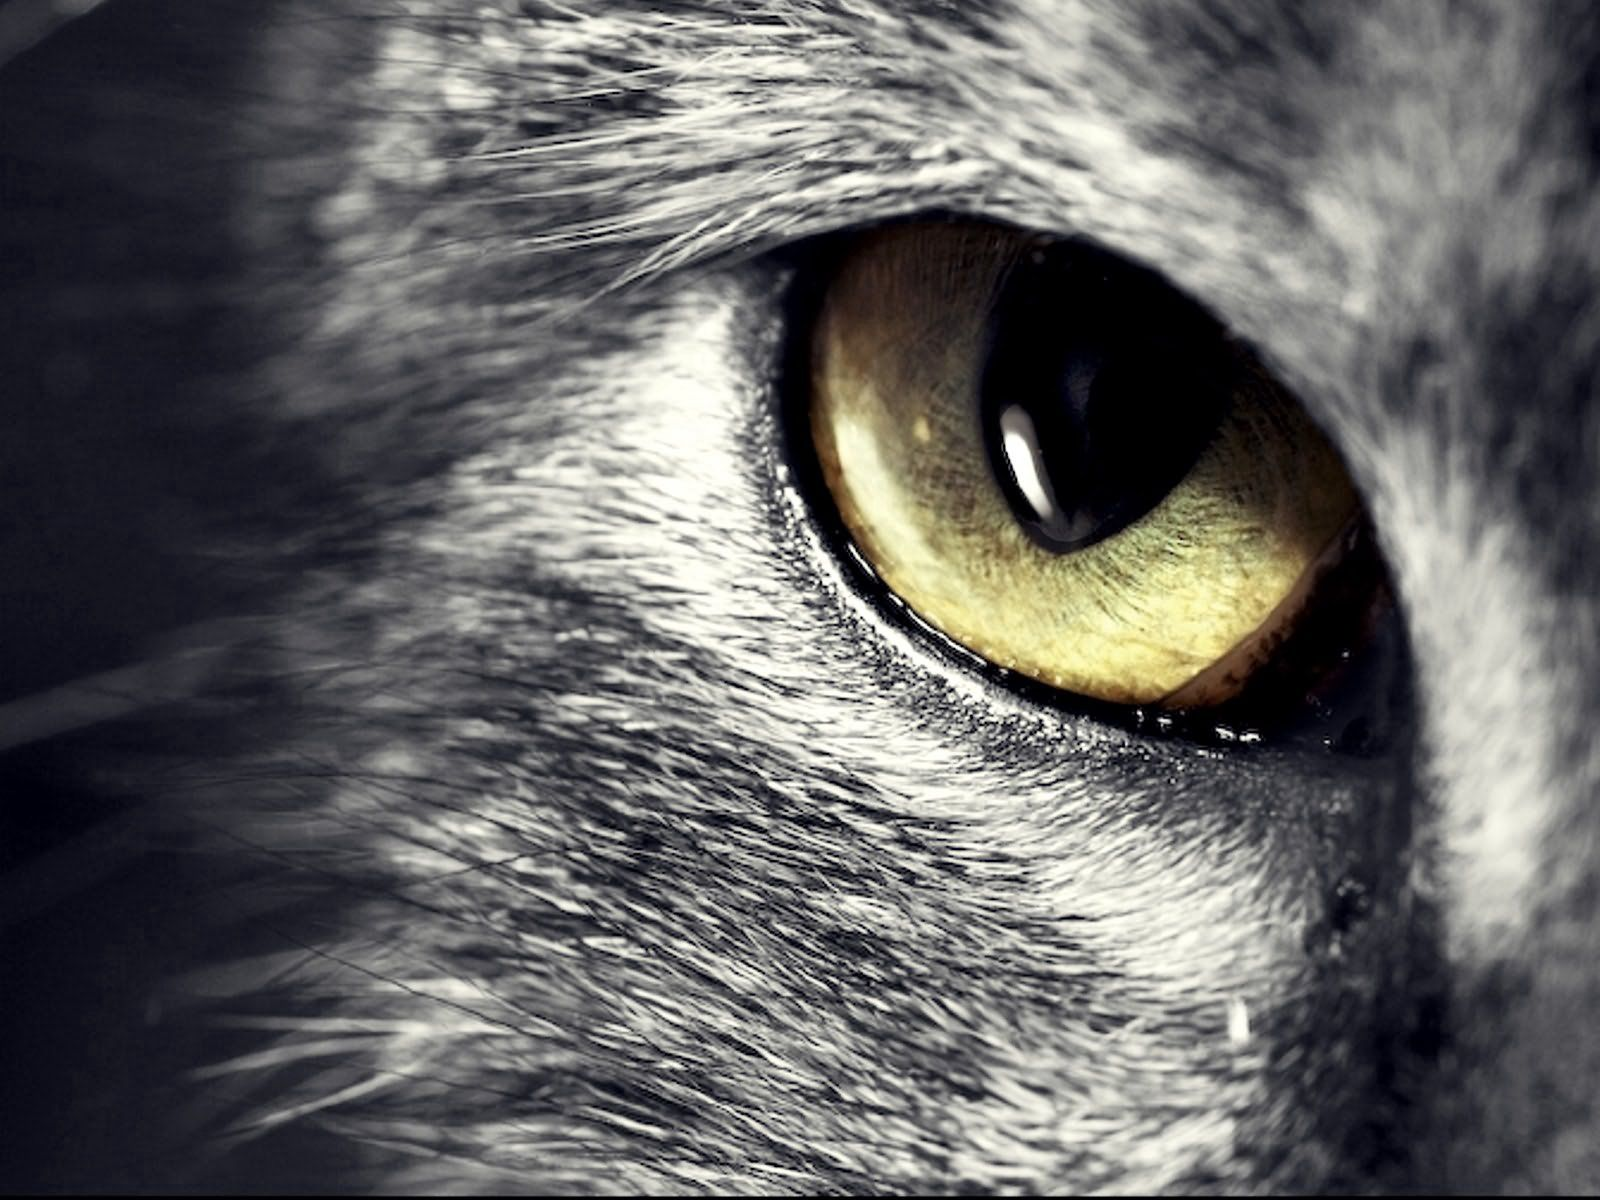 100867 download wallpaper Animals, Cat, Sight, Opinion, Eyes, Muzzle screensavers and pictures for free